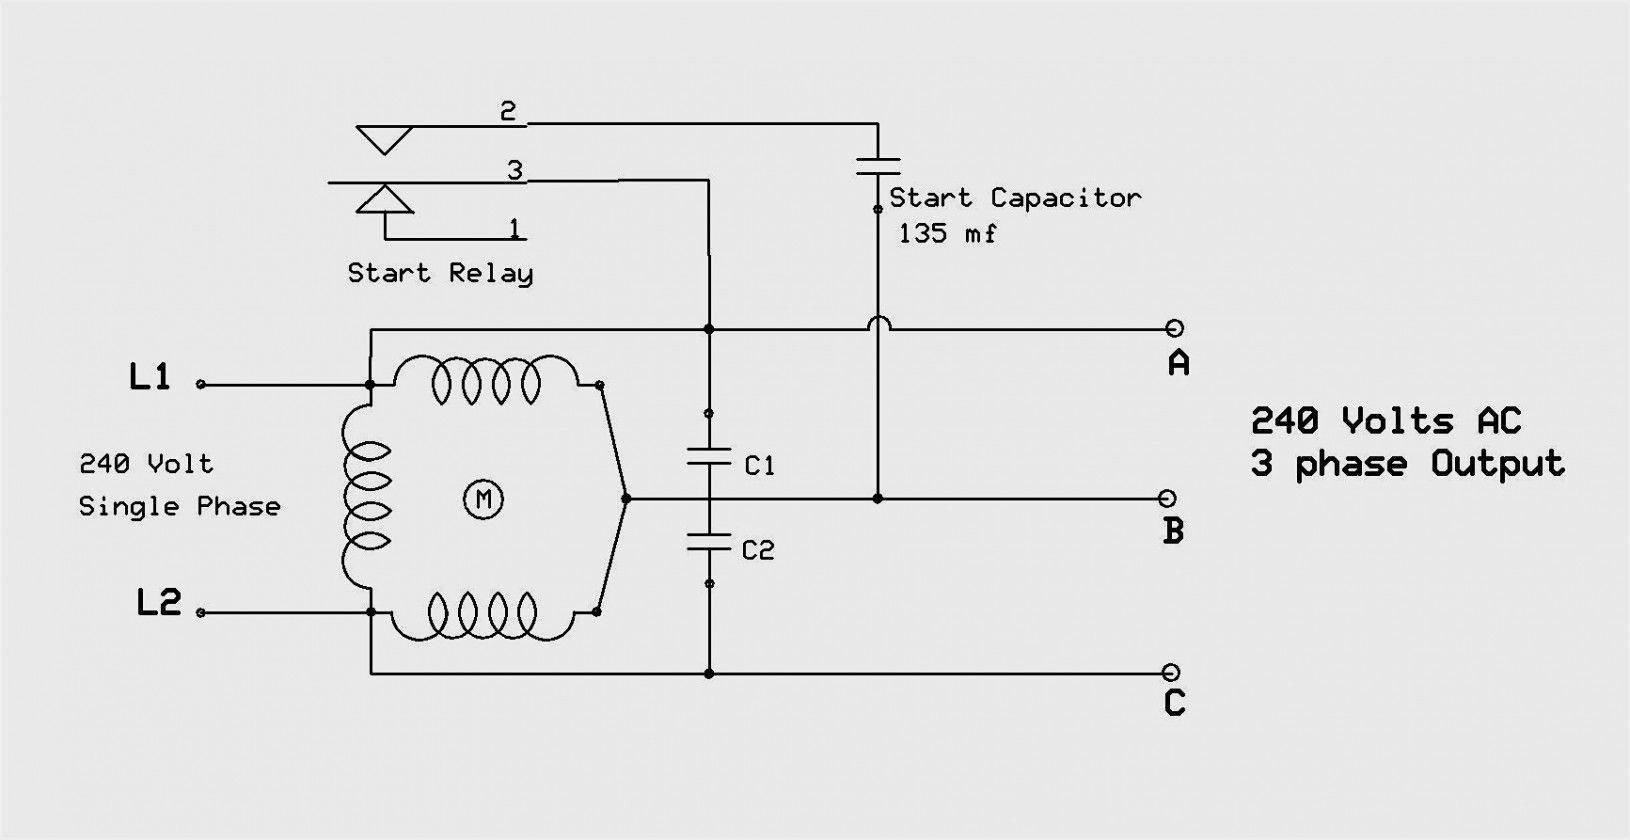 [SCHEMATICS_4PO]  Wiring Diagram For 220 Volt Single Phase Motor - bookingritzcarlton.info |  Electrical diagram, Diagram, Electrical wiring colours | 208 Volt Wiring Diagram |  | Pinterest